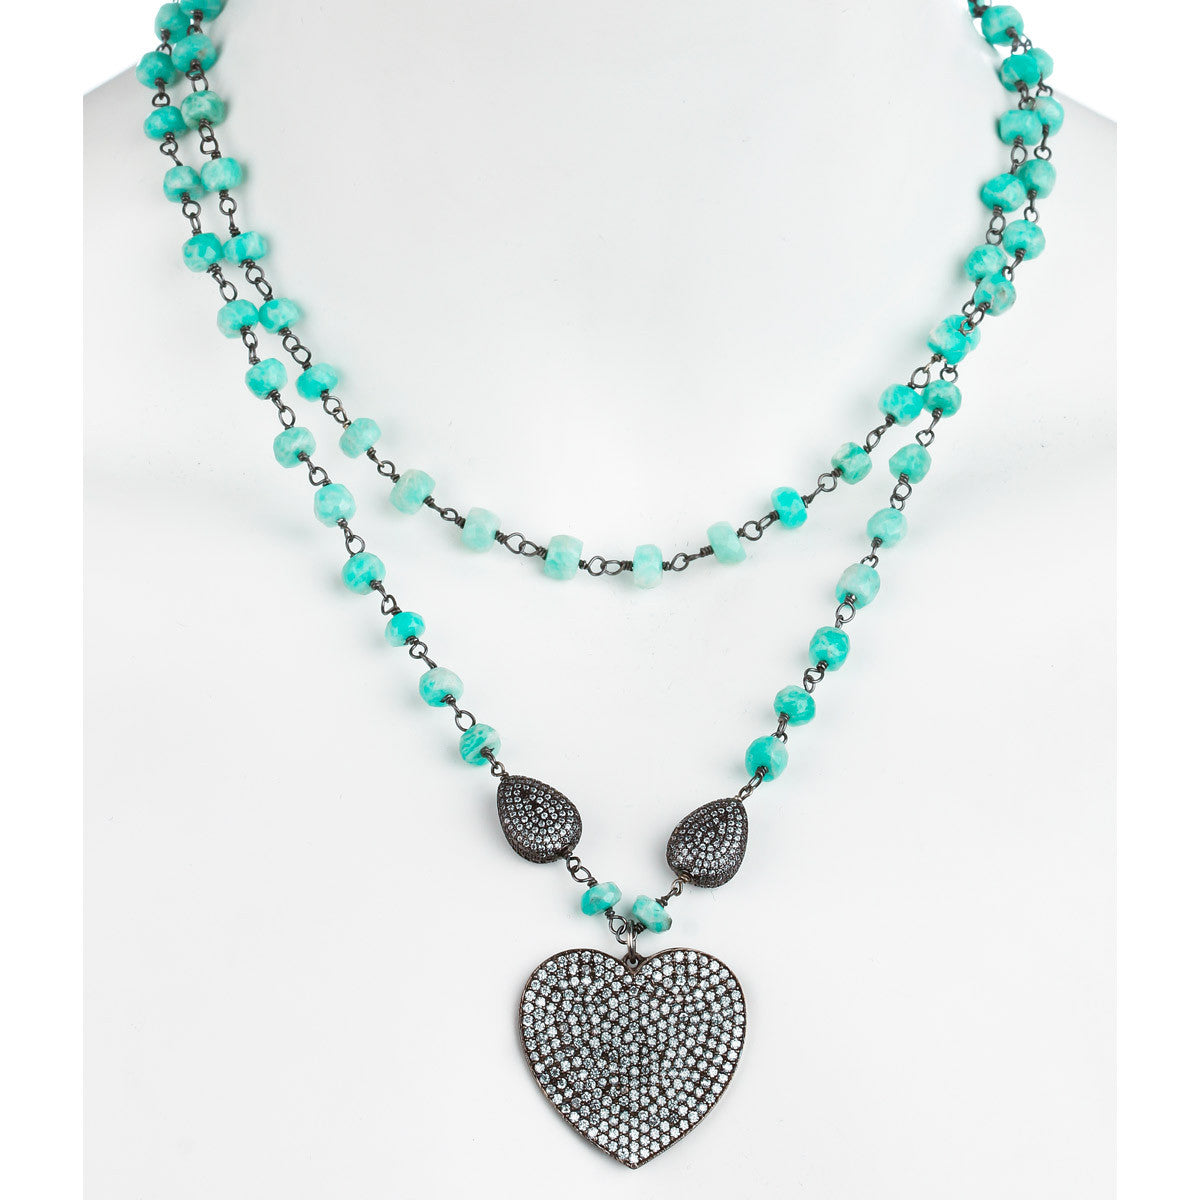 Turquoise Heart Necklace Set - The Firestone Collection - Fashion Jewelry & Accessories